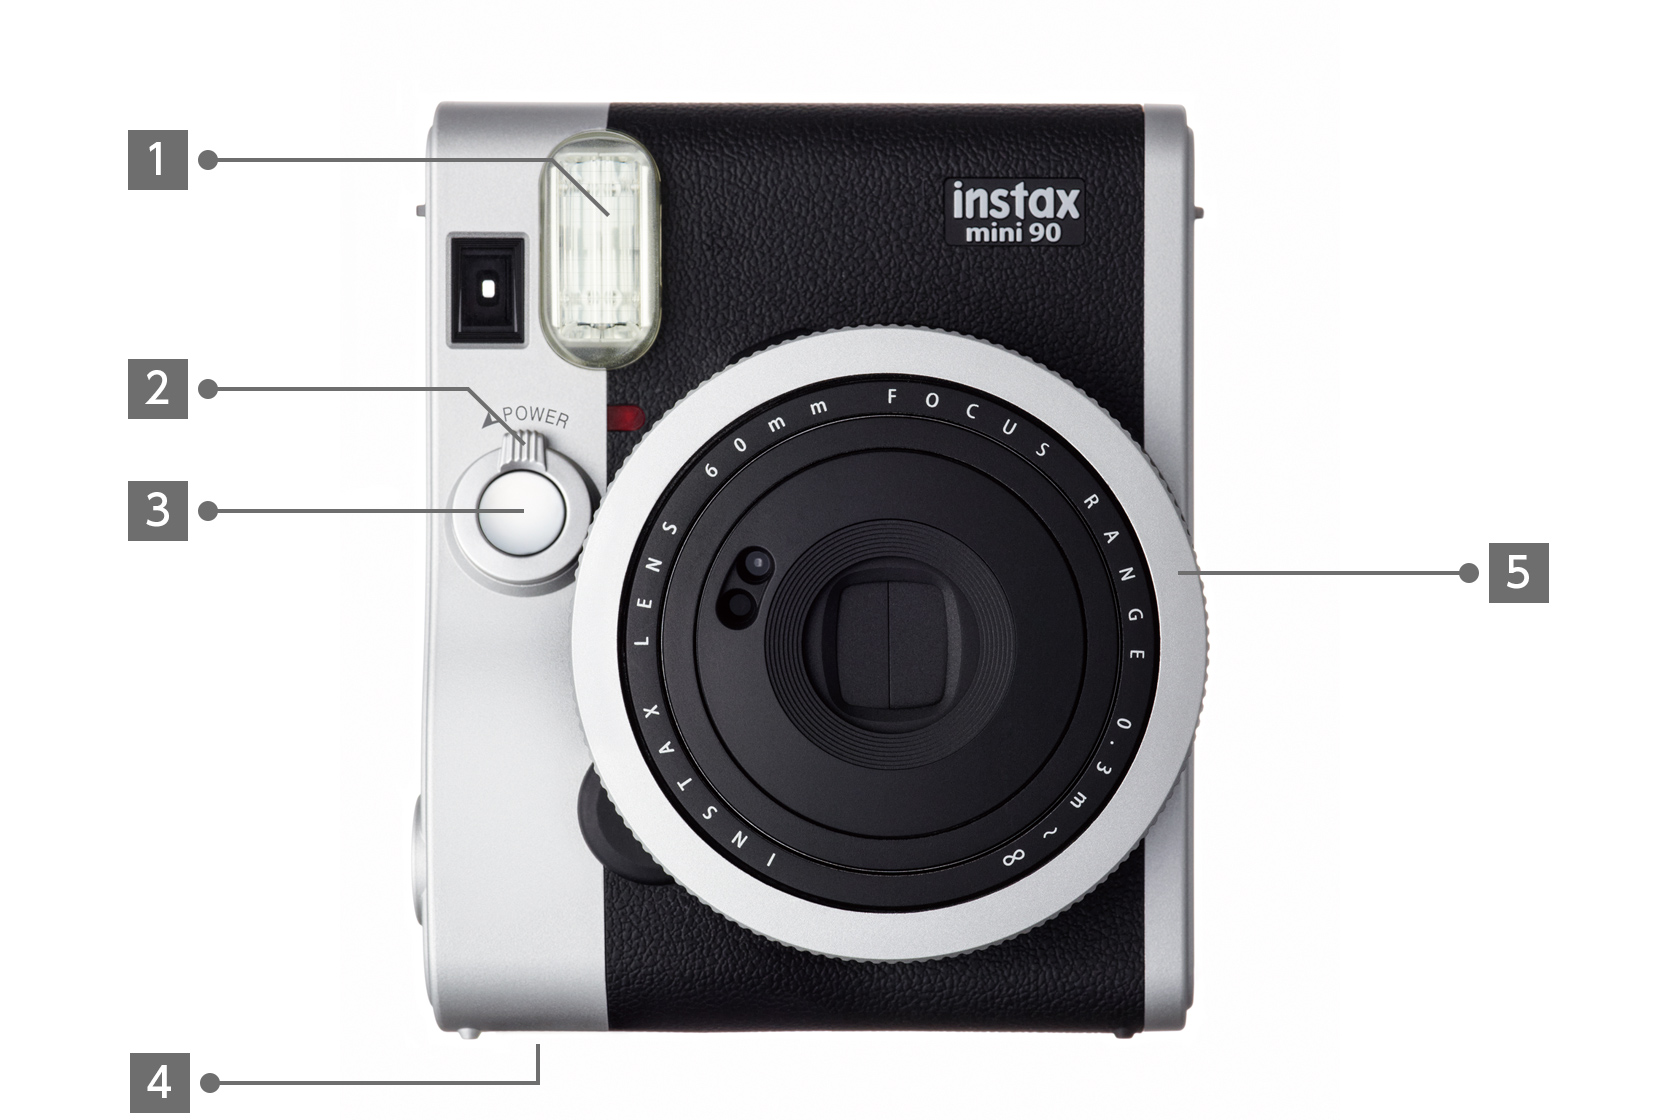 [photo] Front view of the Instax Mini 90 camera with different parts labeled 1 through 5